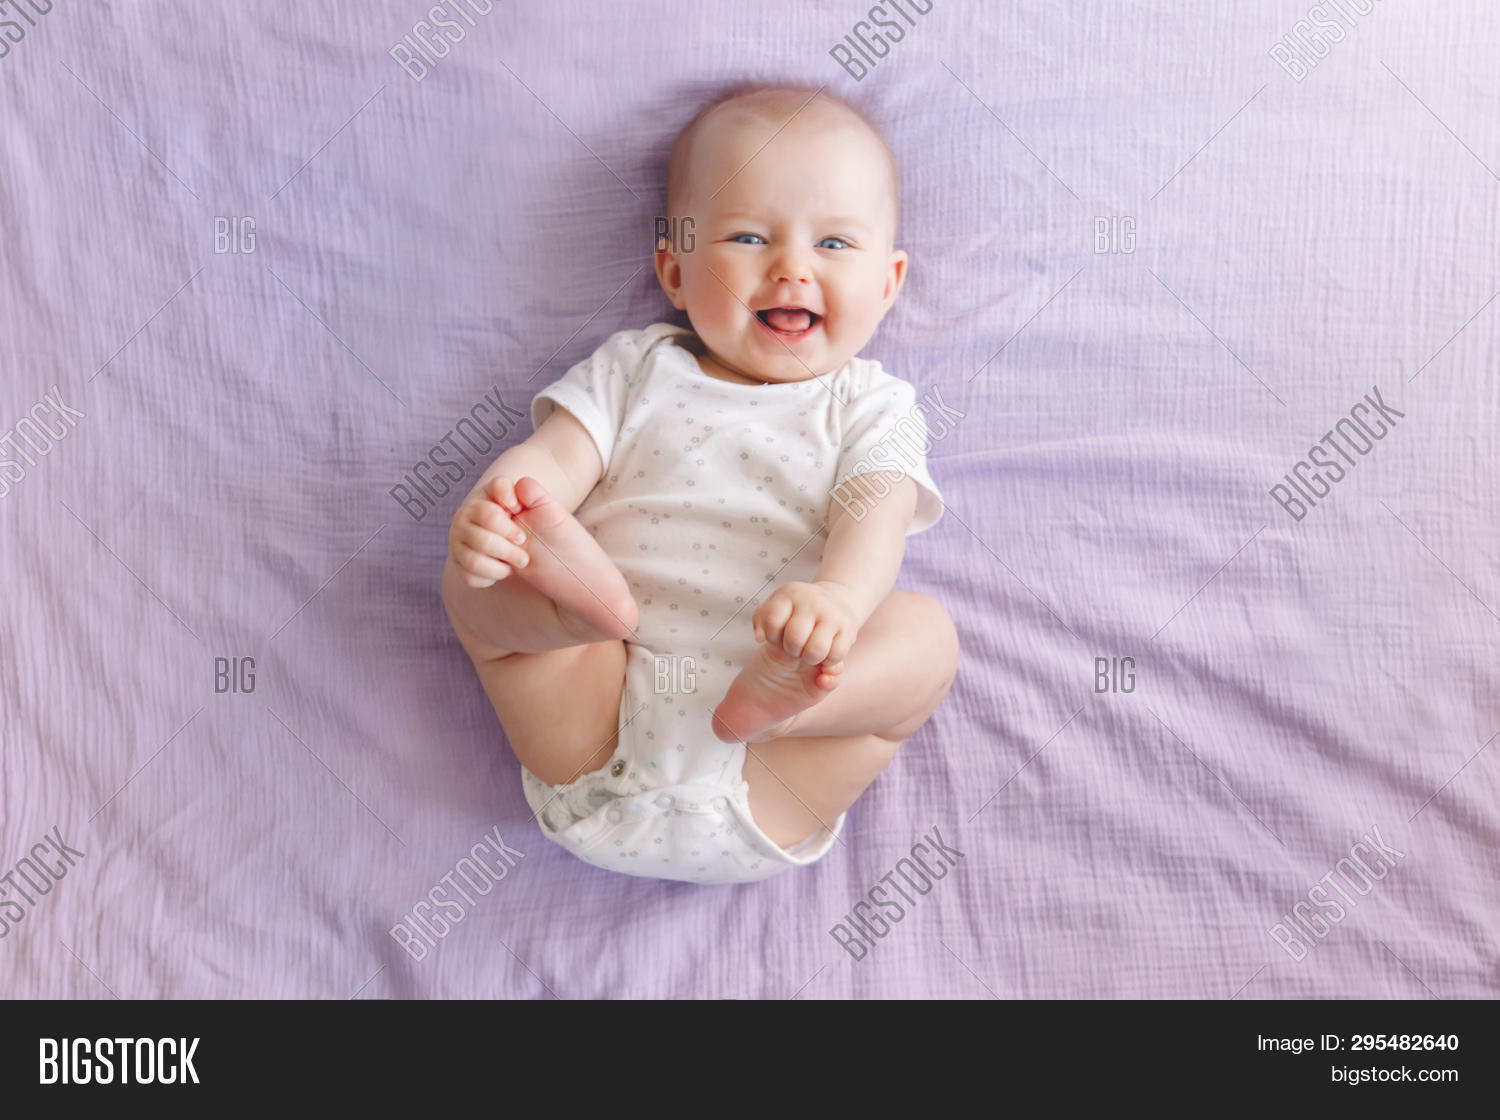 c9e7437f789c Portrait Of Cute Adorable Smiling Laughing White Caucasian Baby Girl Boy  With Blue Eyes Four Months